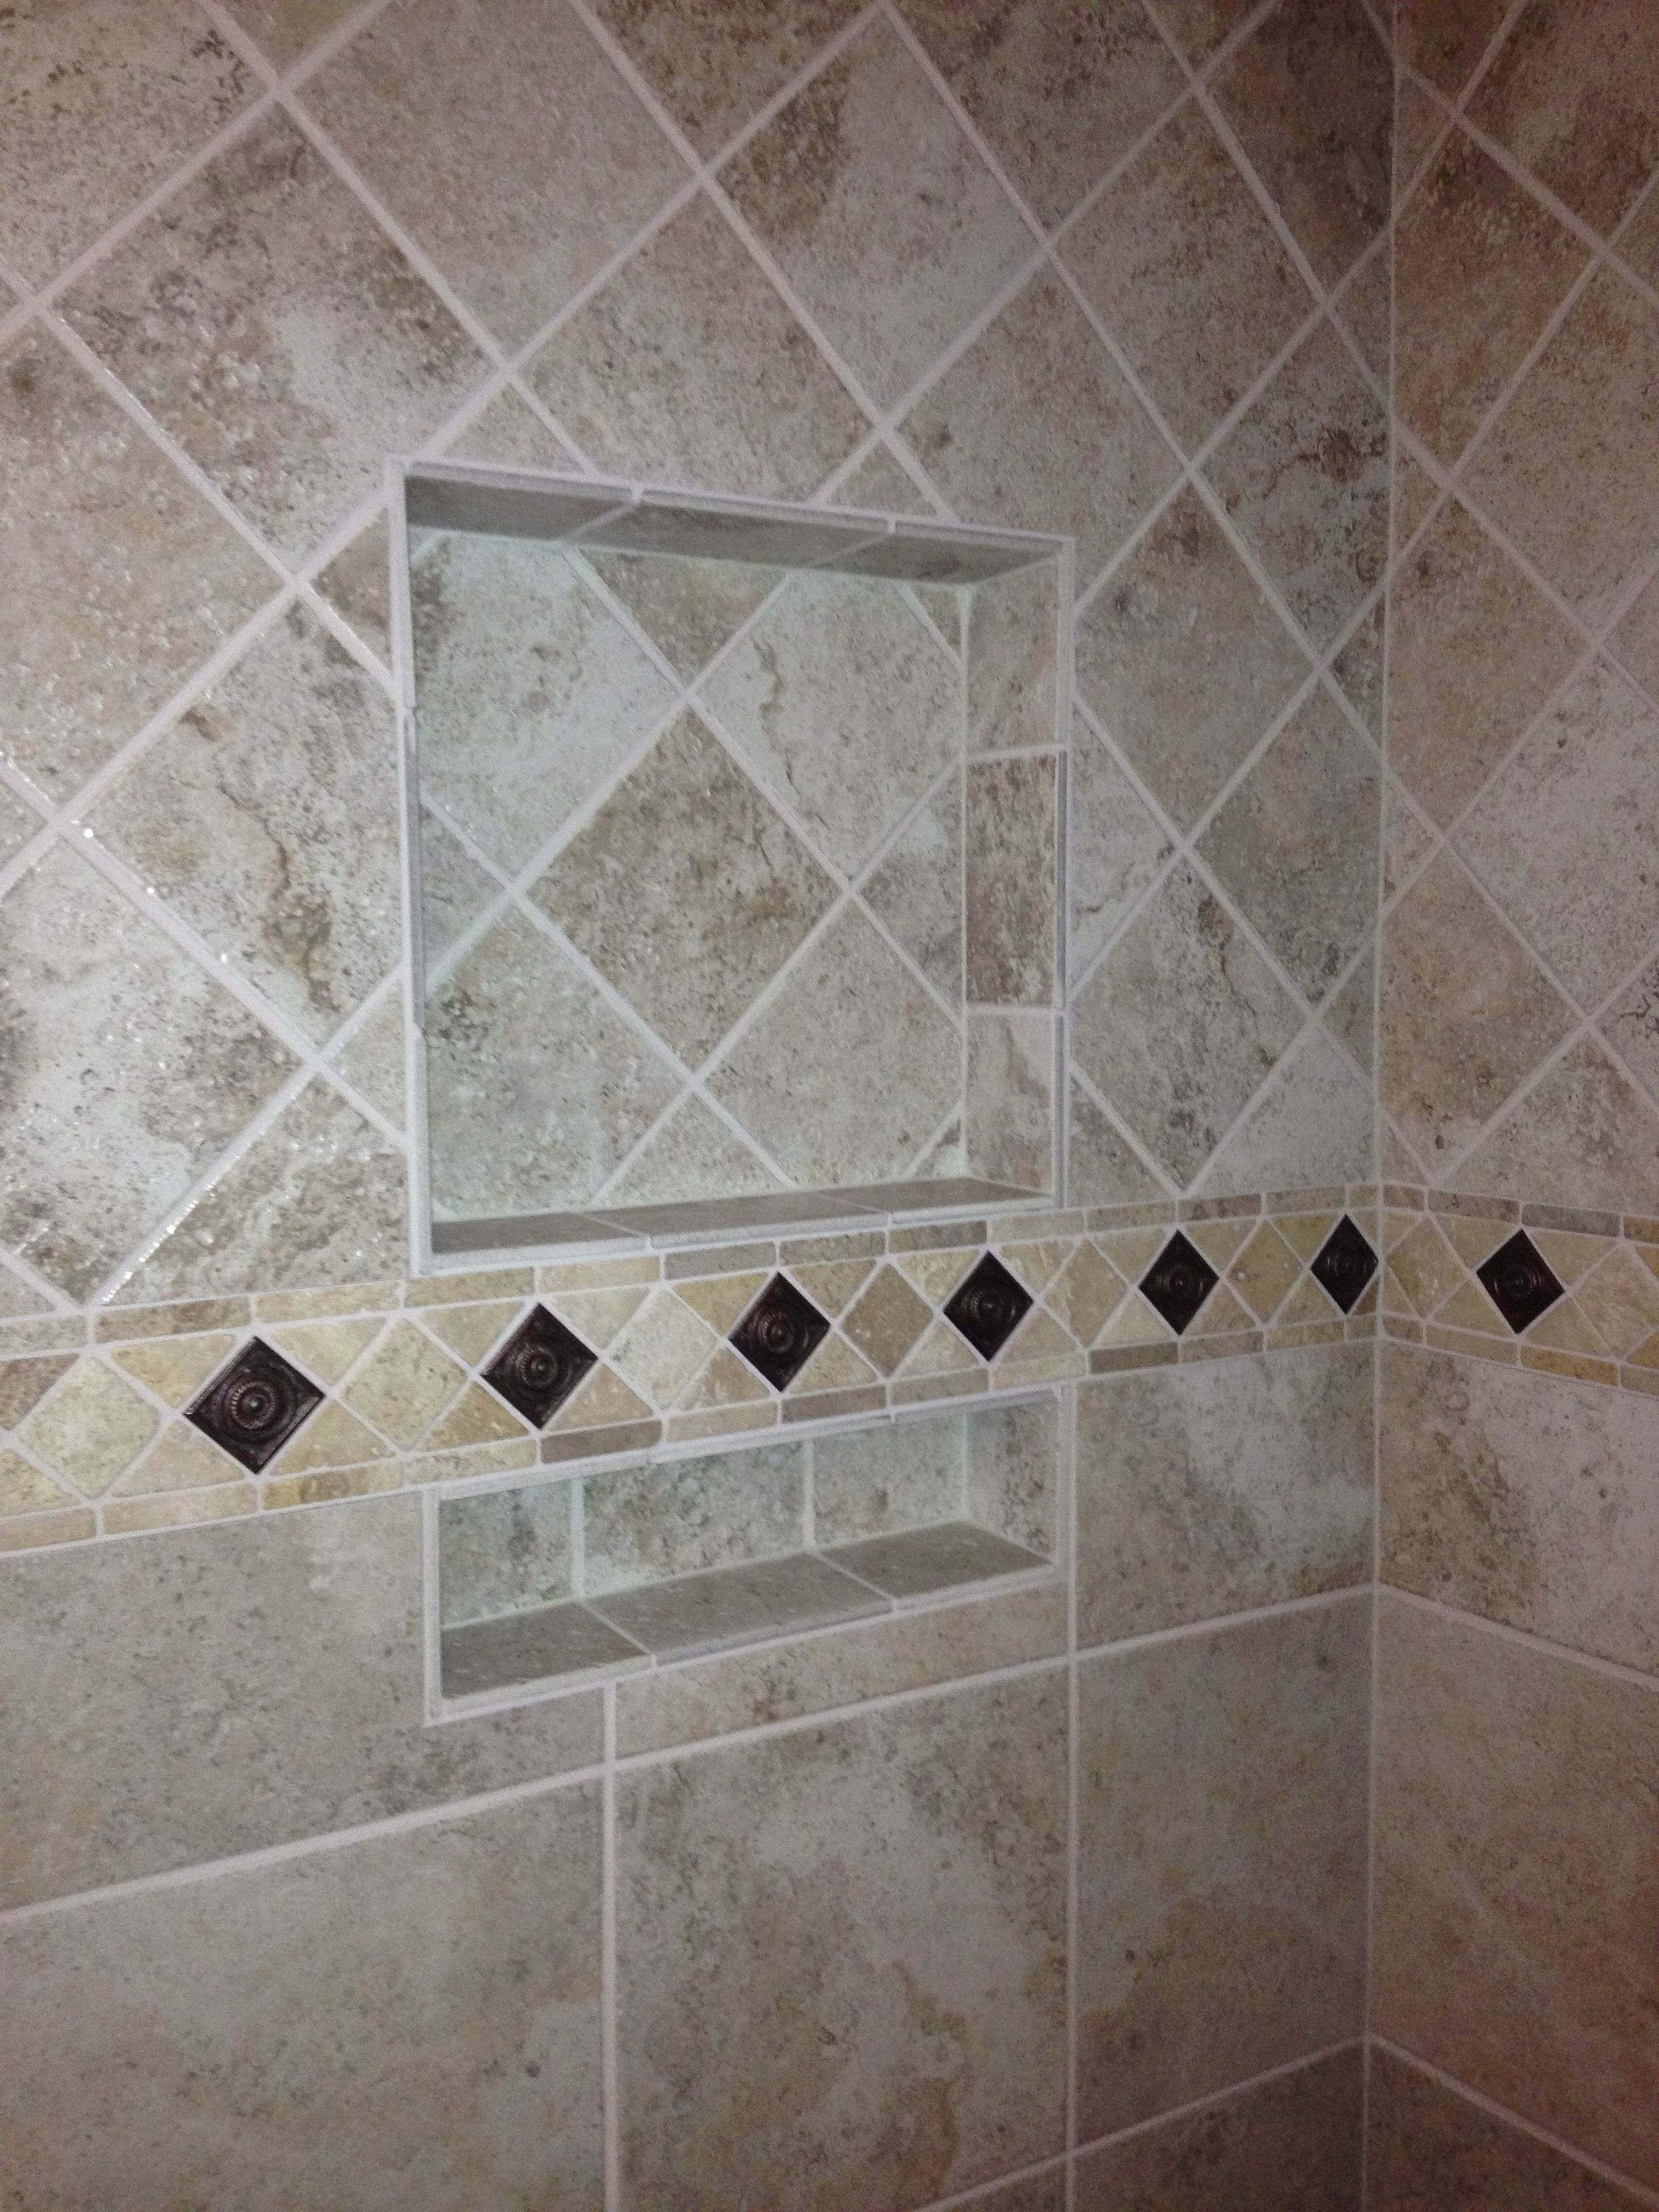 Wonderful Tile Pattern Change, Upper Tile Diamond Pattern, Lower Straight Pattern,  Decorative Border With